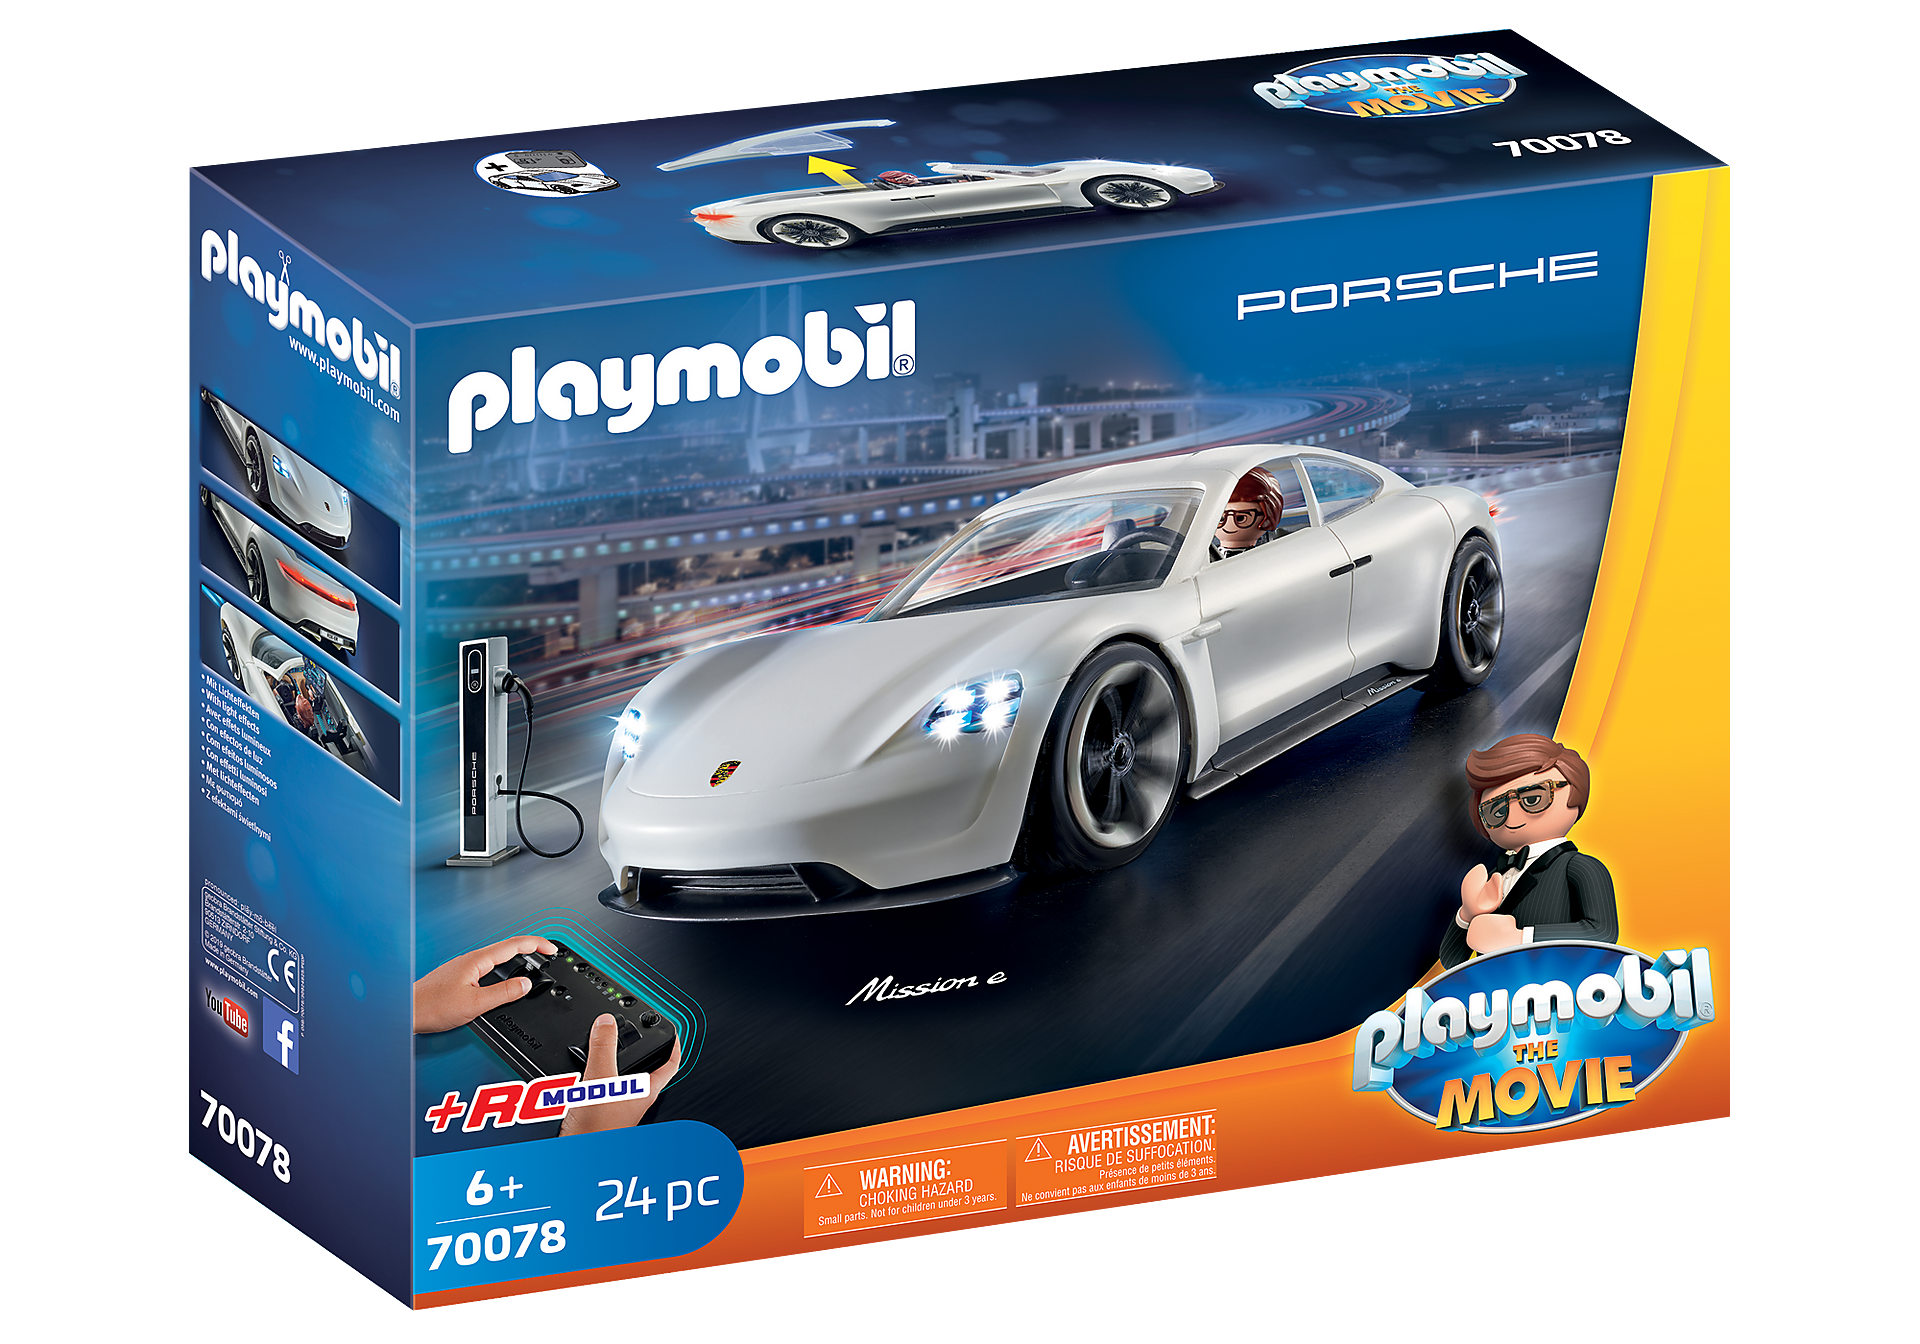 http://media.playmobil.com/i/playmobil/70078_product_box_front/PLAYMOBIL: THE MOVIE Rex Dasher's Porsche Mission E